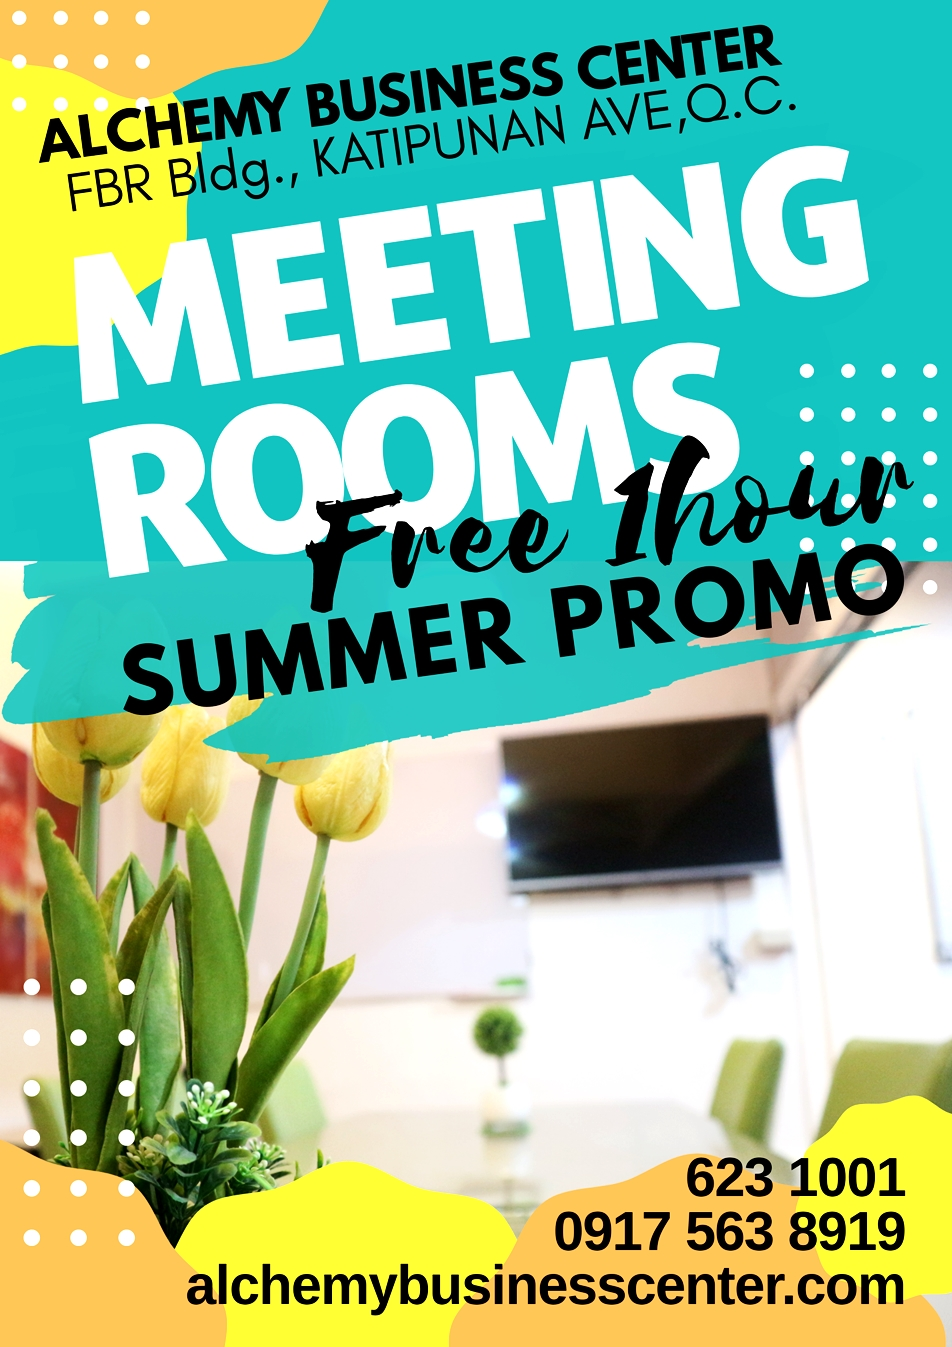 Meeting Room Rent Free 1 hour